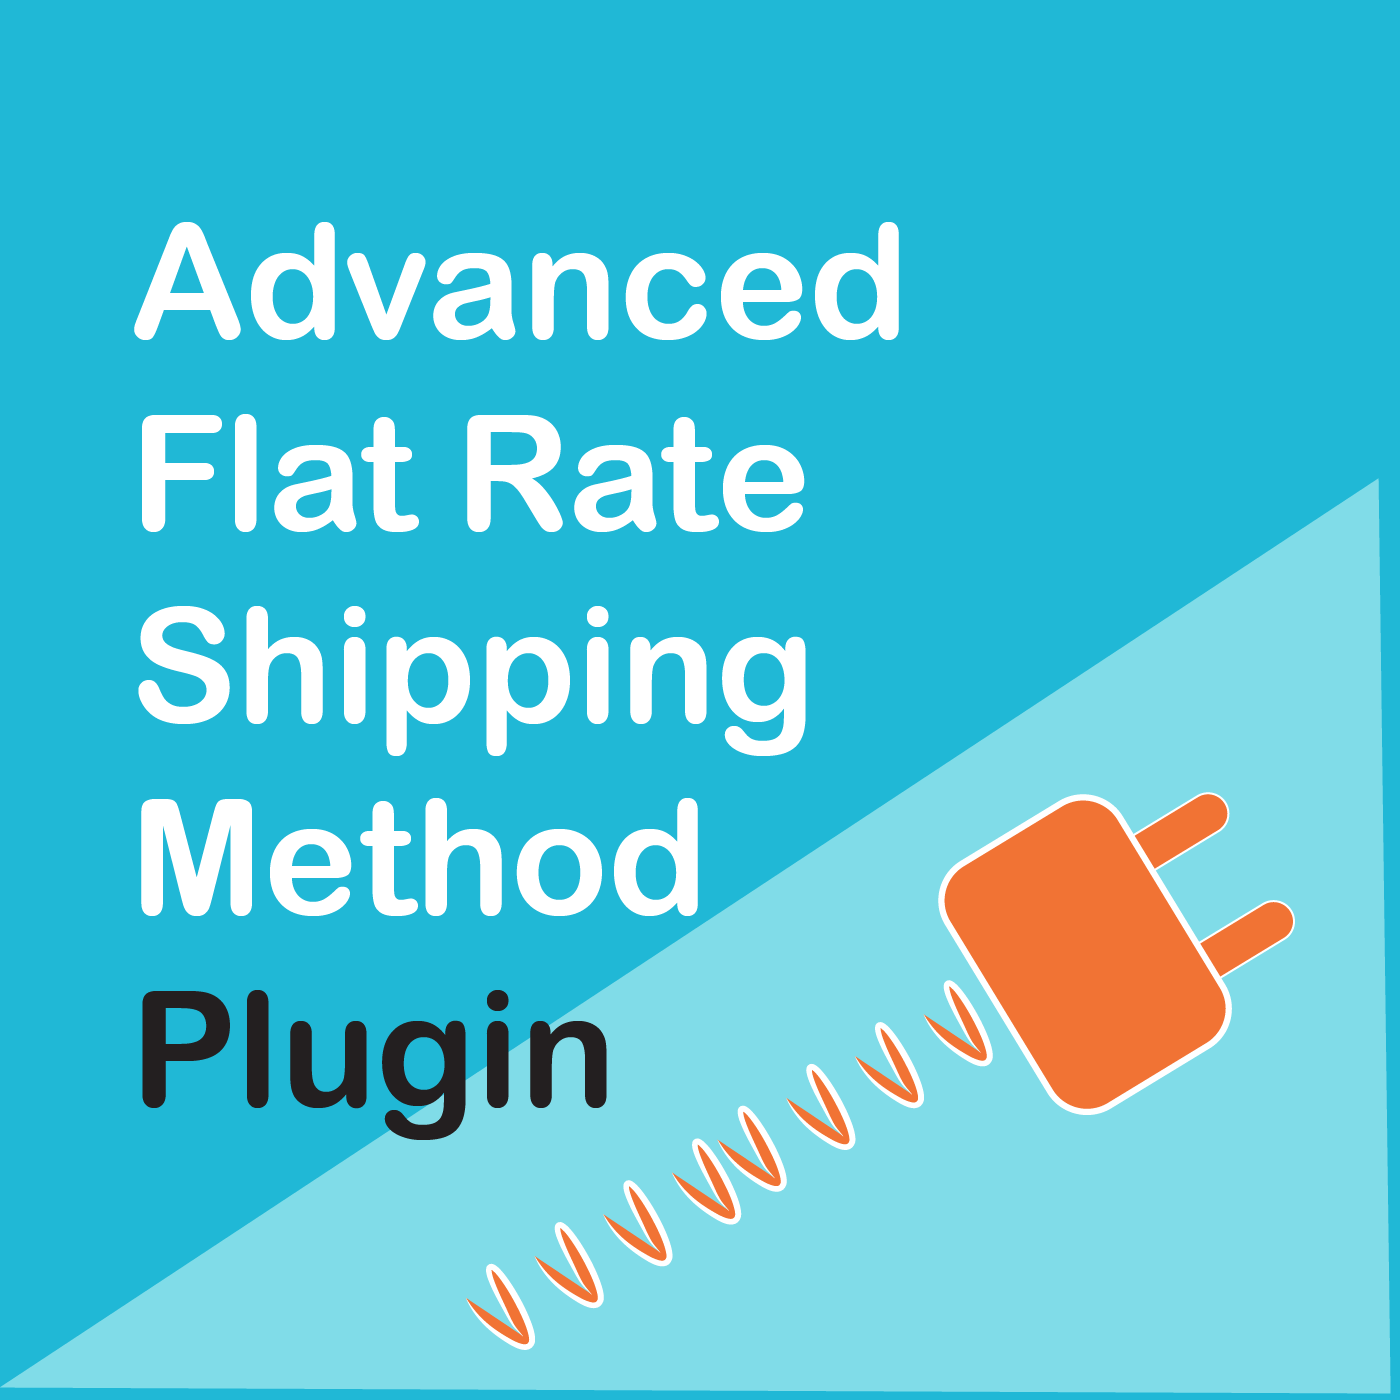 WooCommerce Advanced Flat Rate Shipping Method